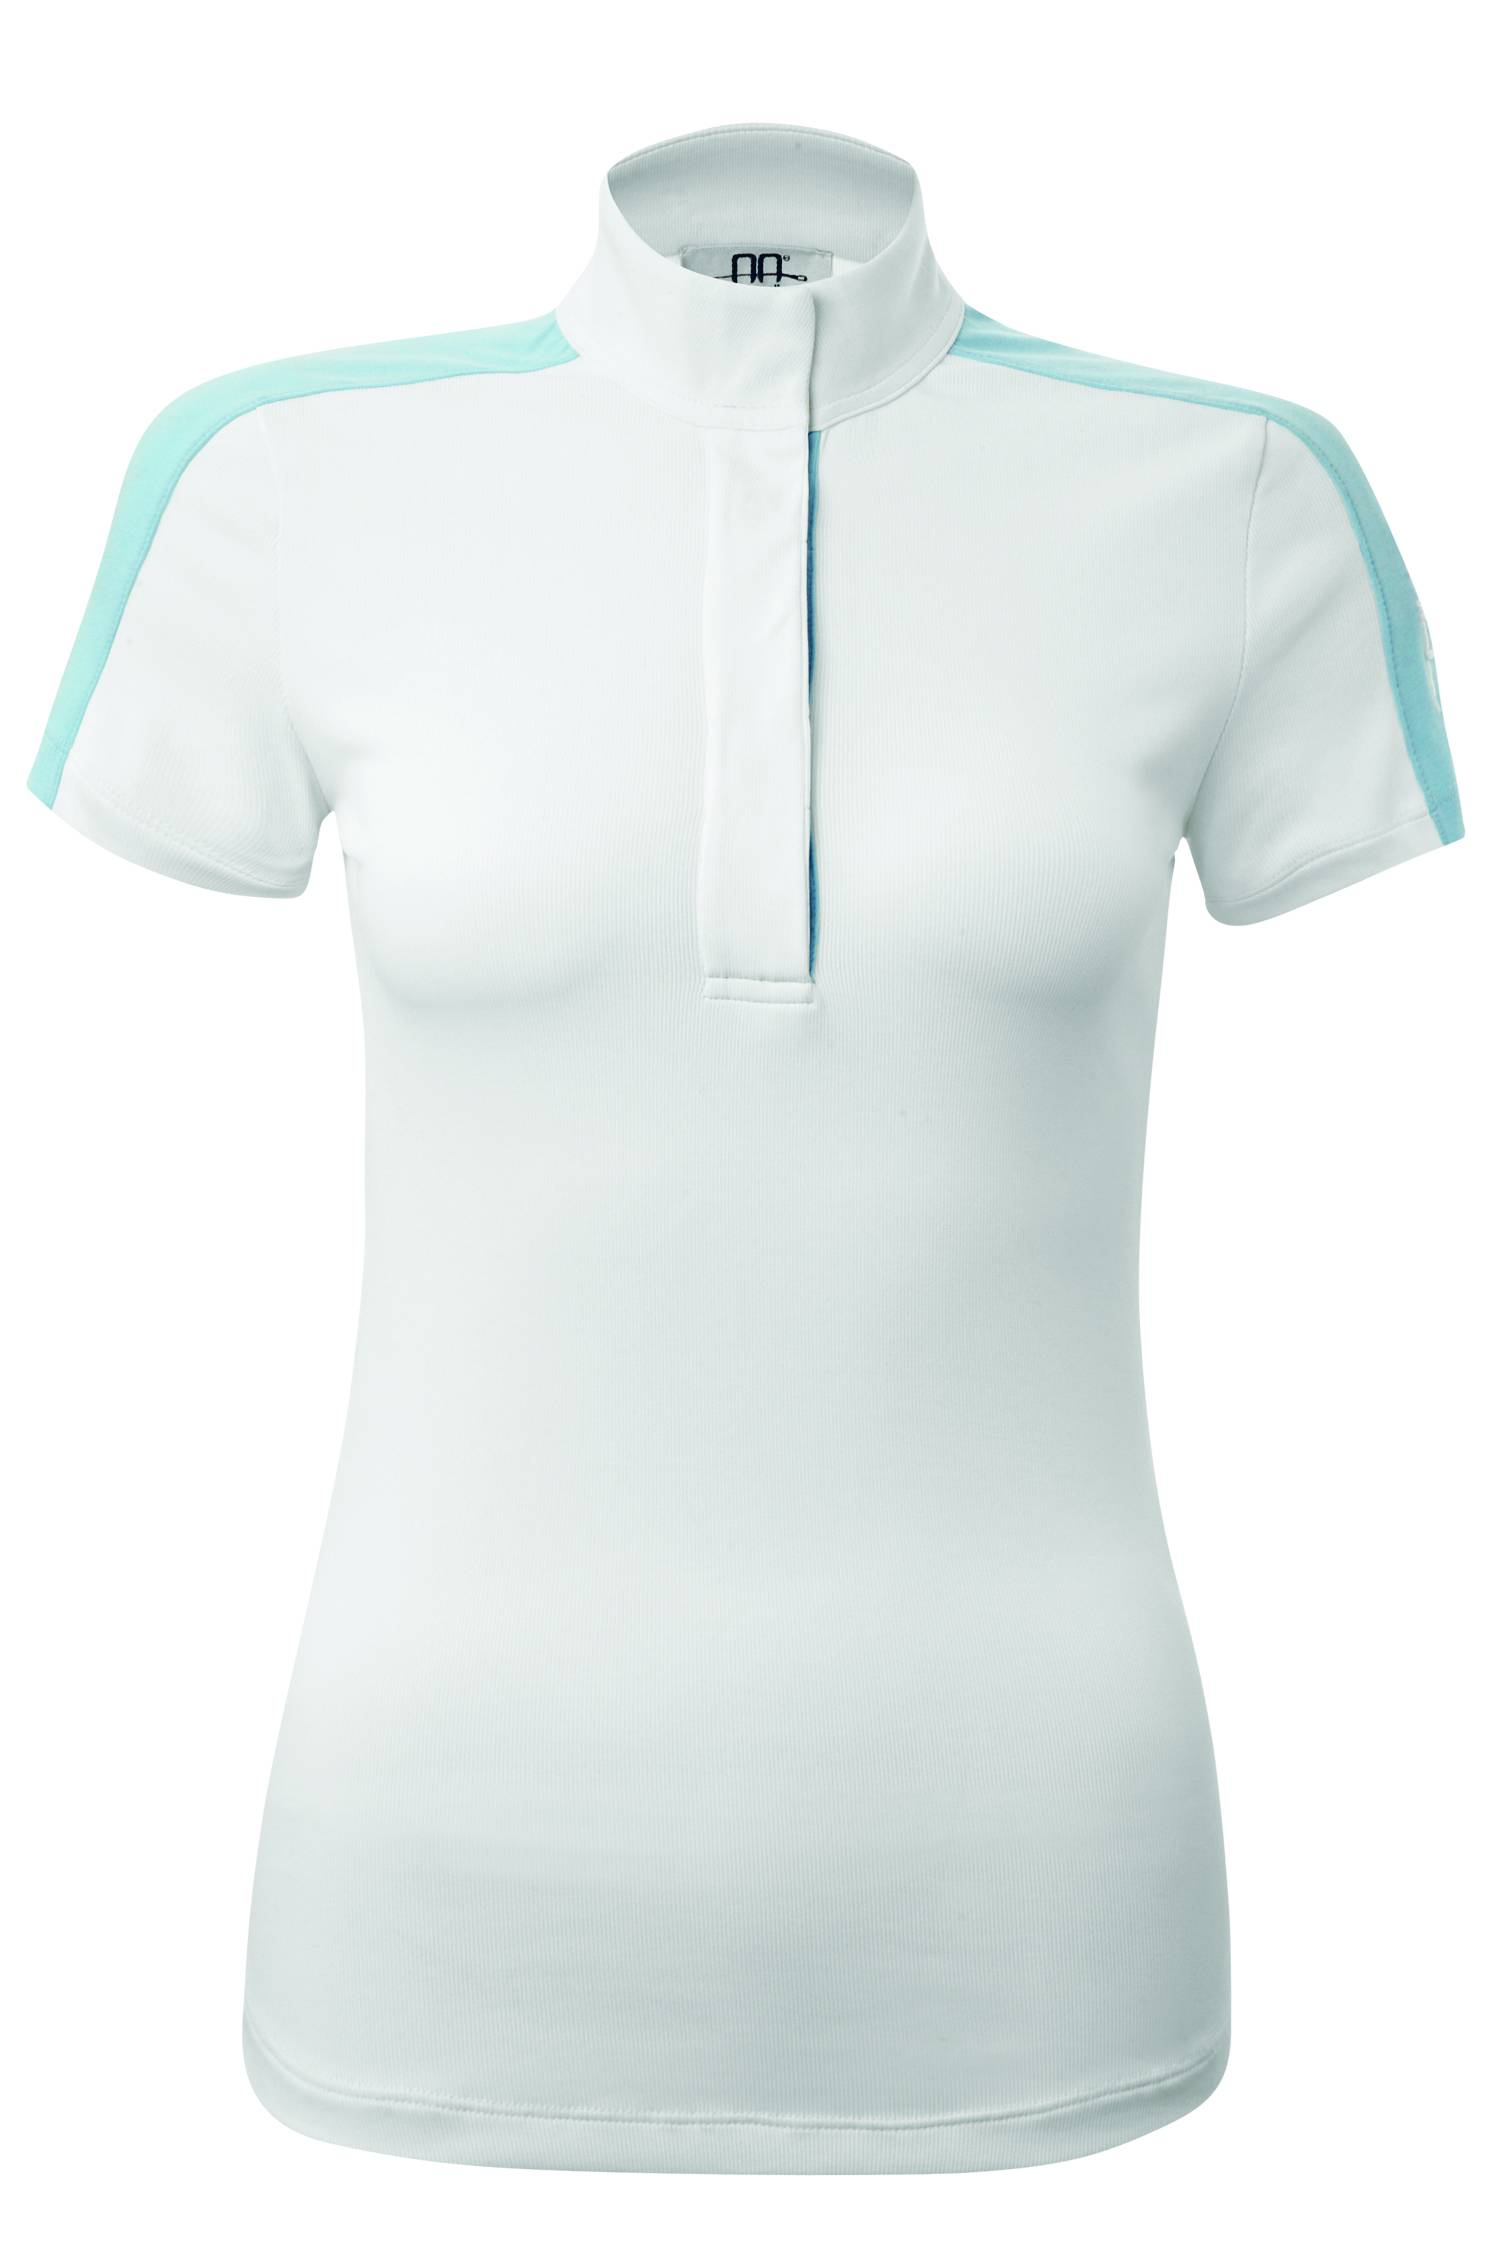 Alessandro Albanese Ladies Polo Competition Top Short Sleeve